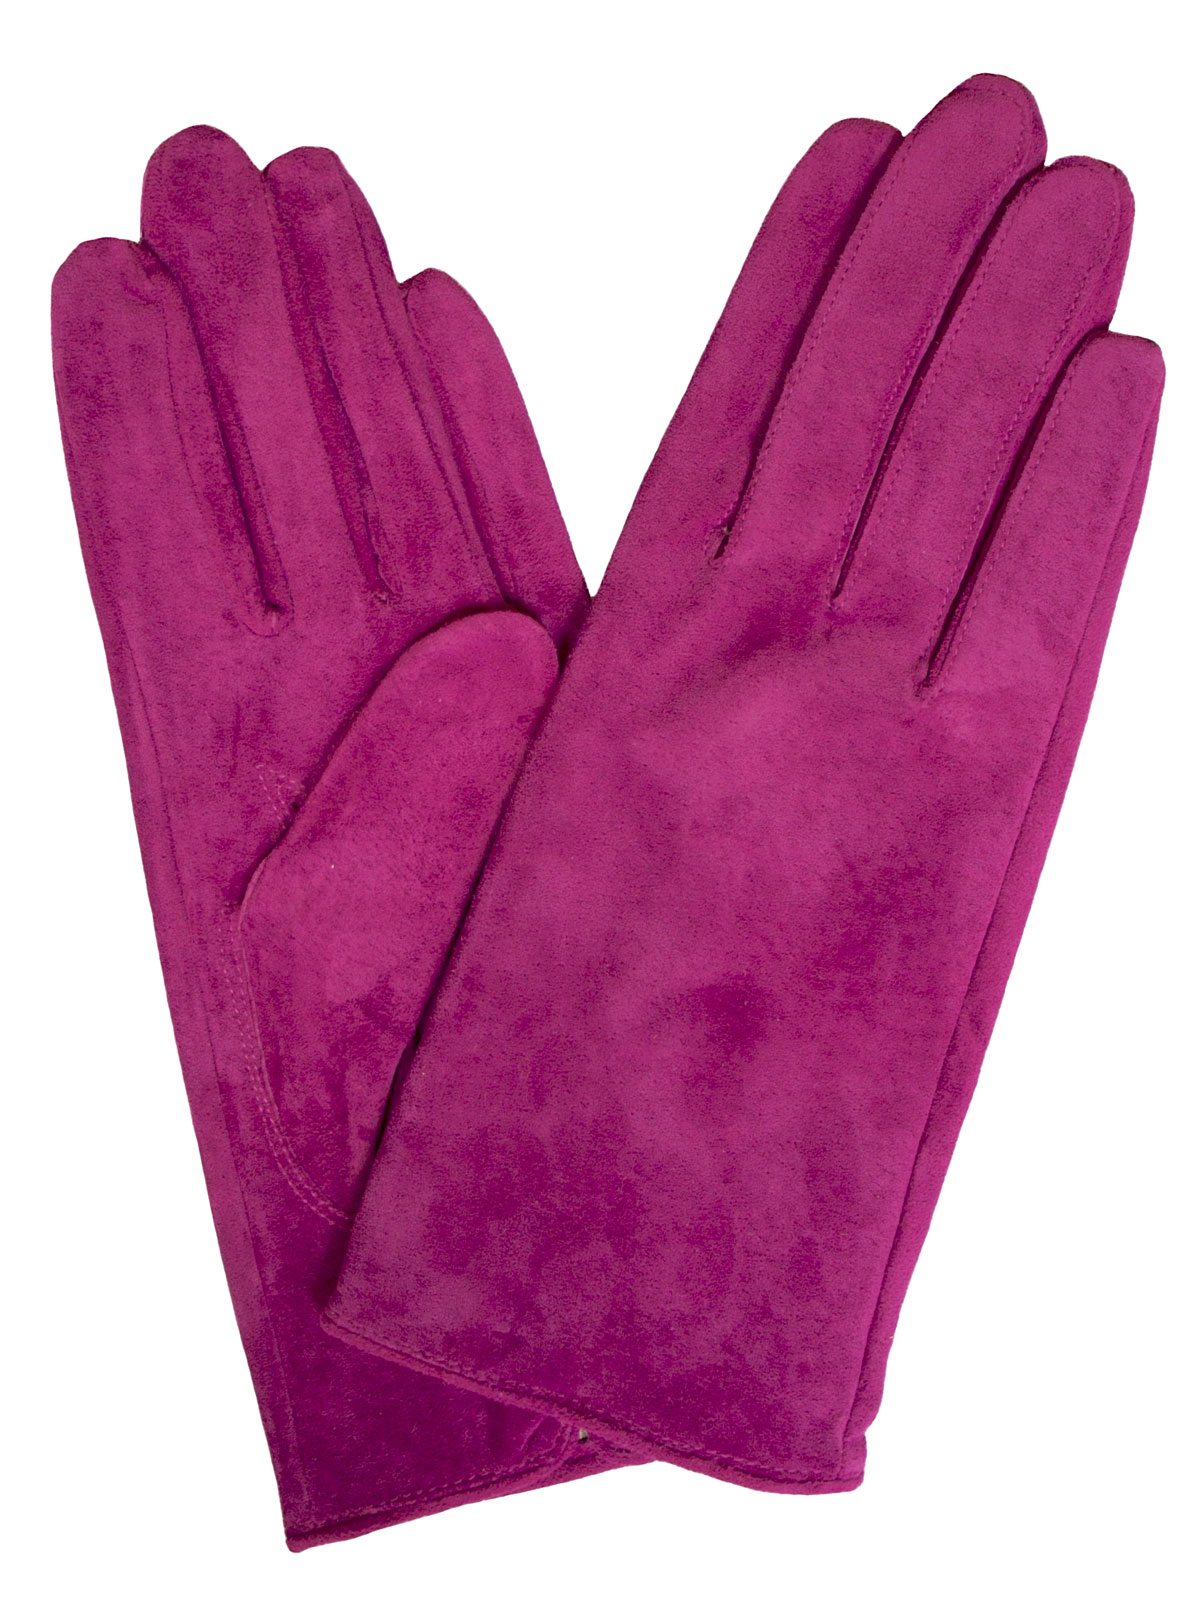 Find women suede gloves at ShopStyle. Shop the latest collection of women suede gloves from the most popular stores - all in one place.